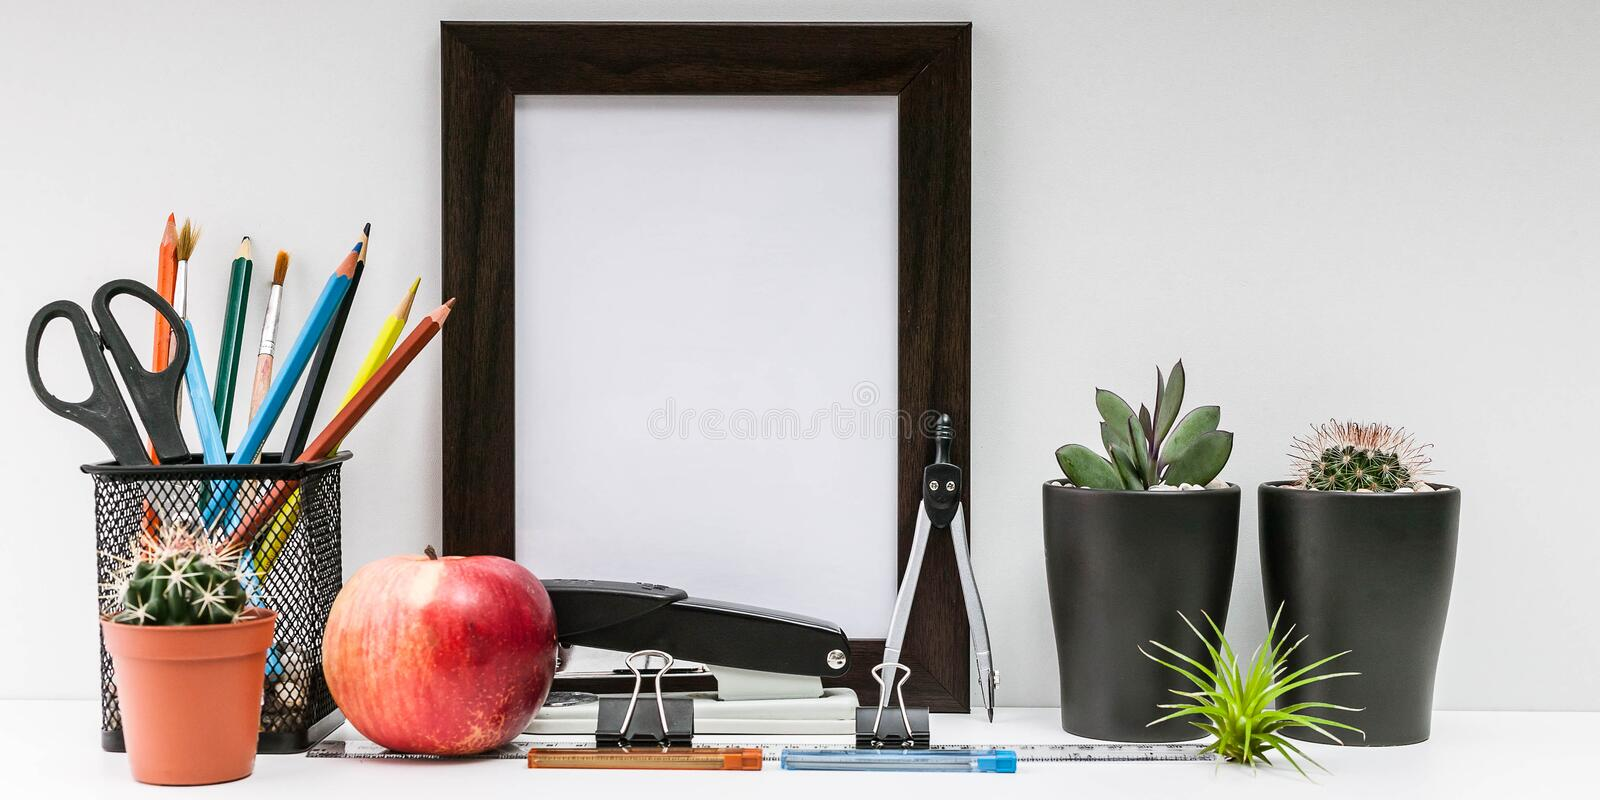 Empty dark photo frame, succulents in dark pots, colored pencils, office supplies, red apple on a white background. Desktop MockUp. Desktop MockUp. Scandinavian stock image